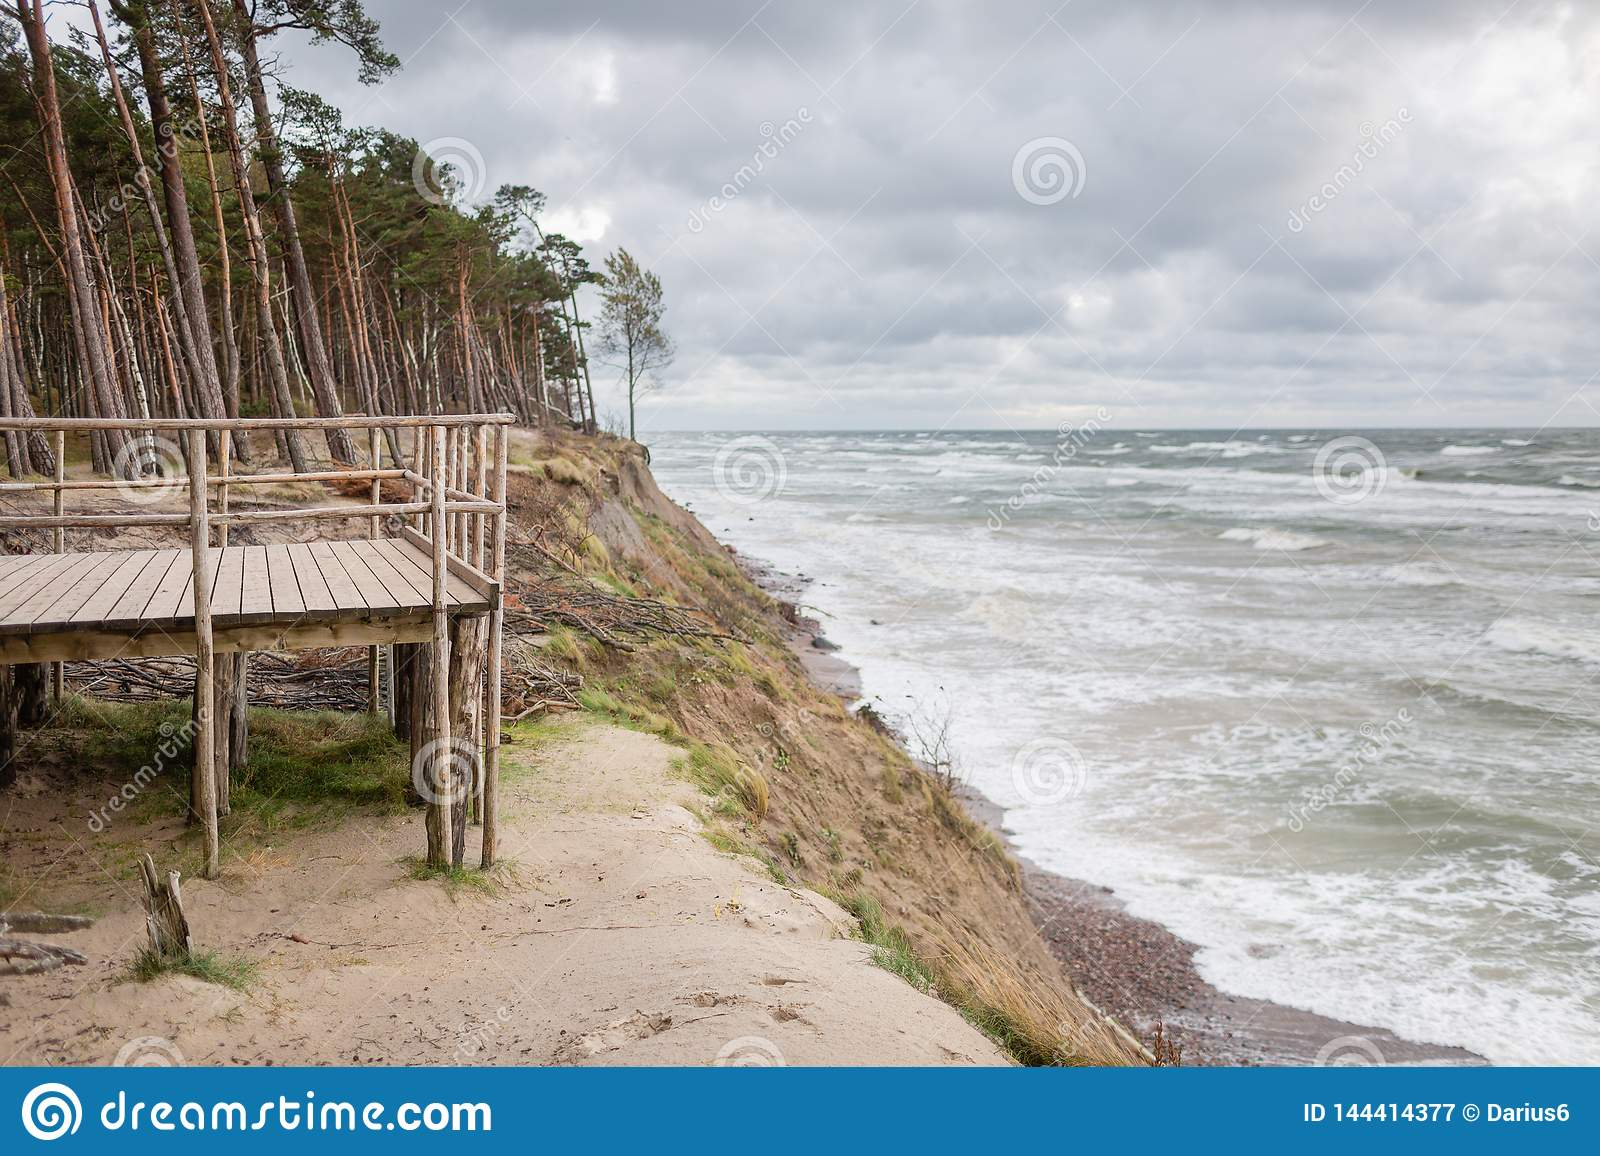 Panoramic view of famous tourist attraction dutchman`s cap in Lithuania`s seaside regional park near Karkle, Lithuania